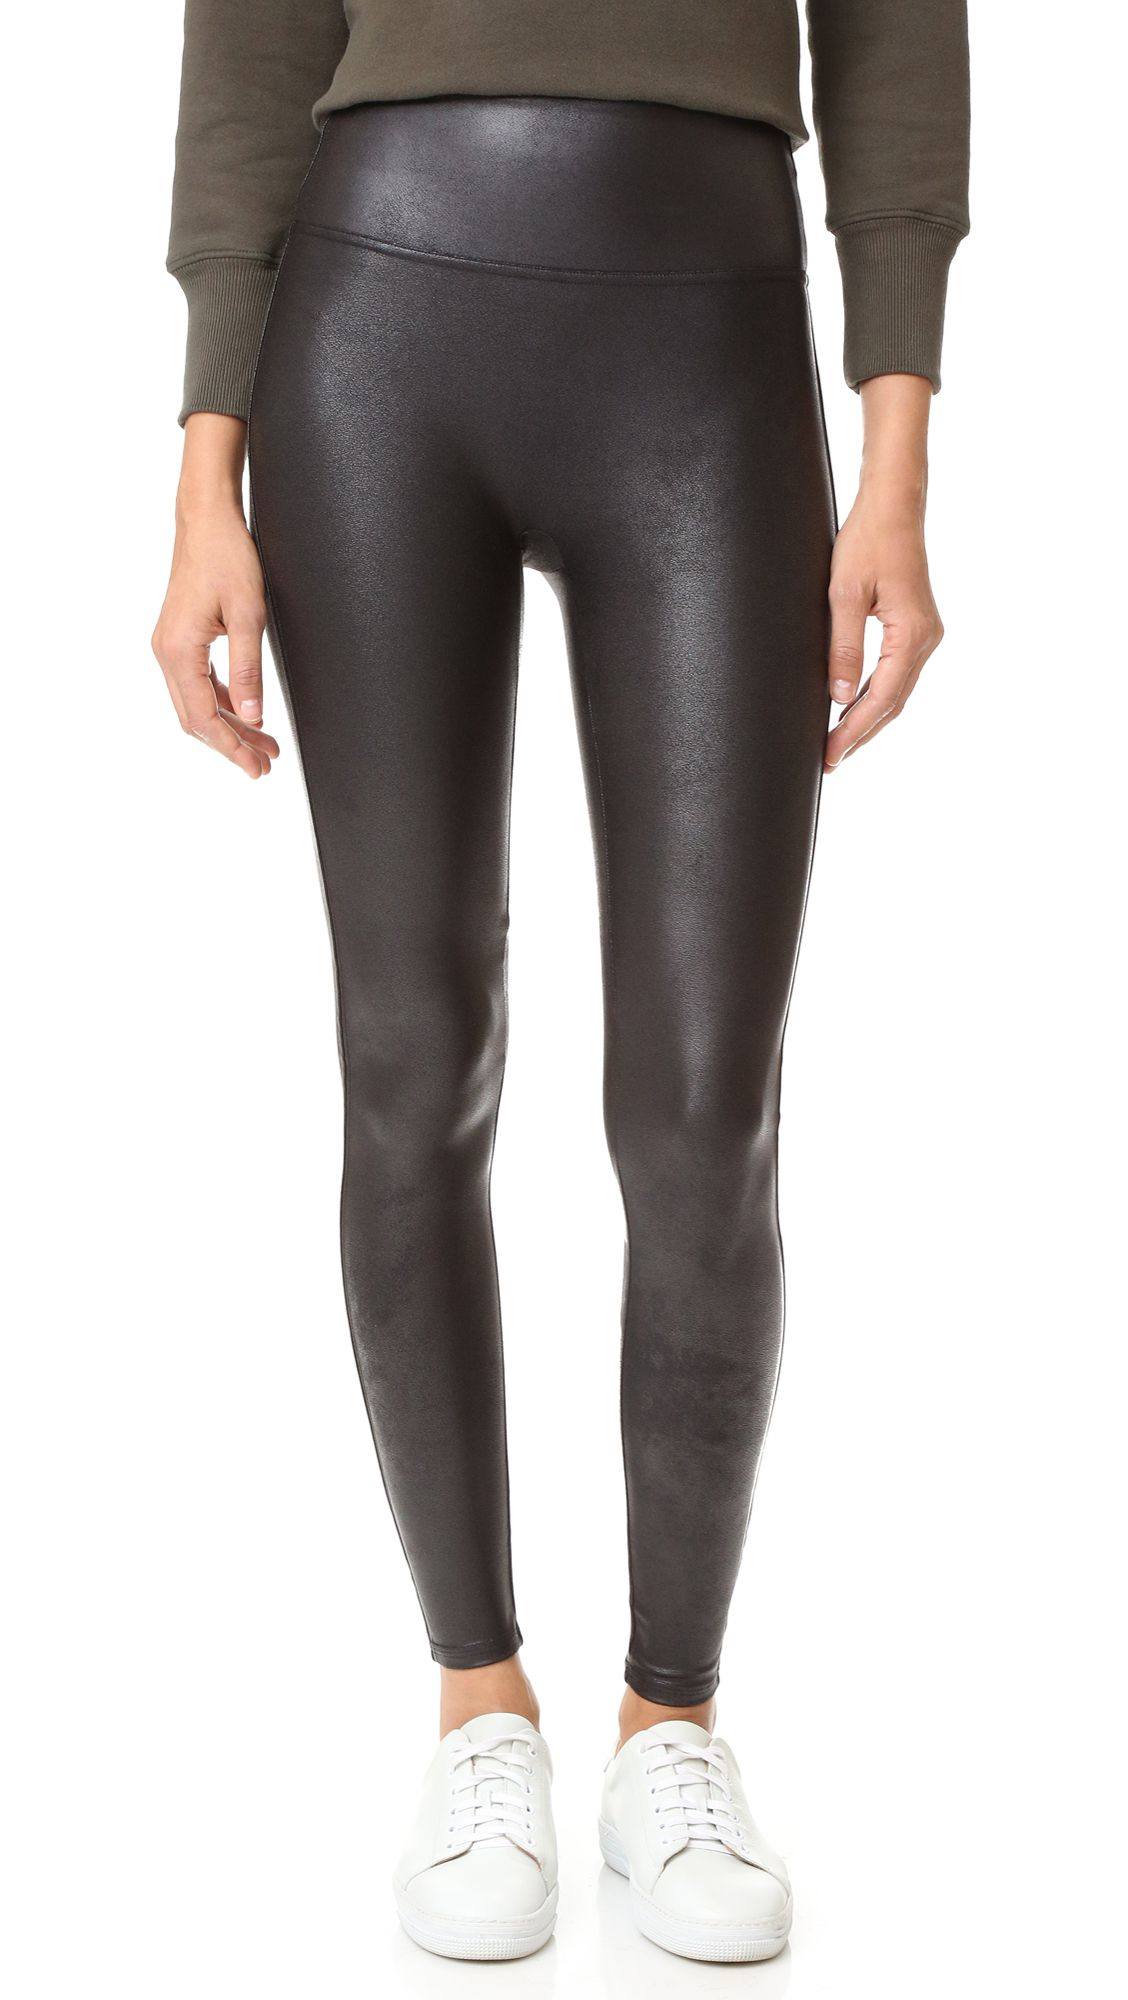 0bcc9245b2c5d Spanx Ready to Wow Faux Leather Leggings | Buy This: What You Need ...